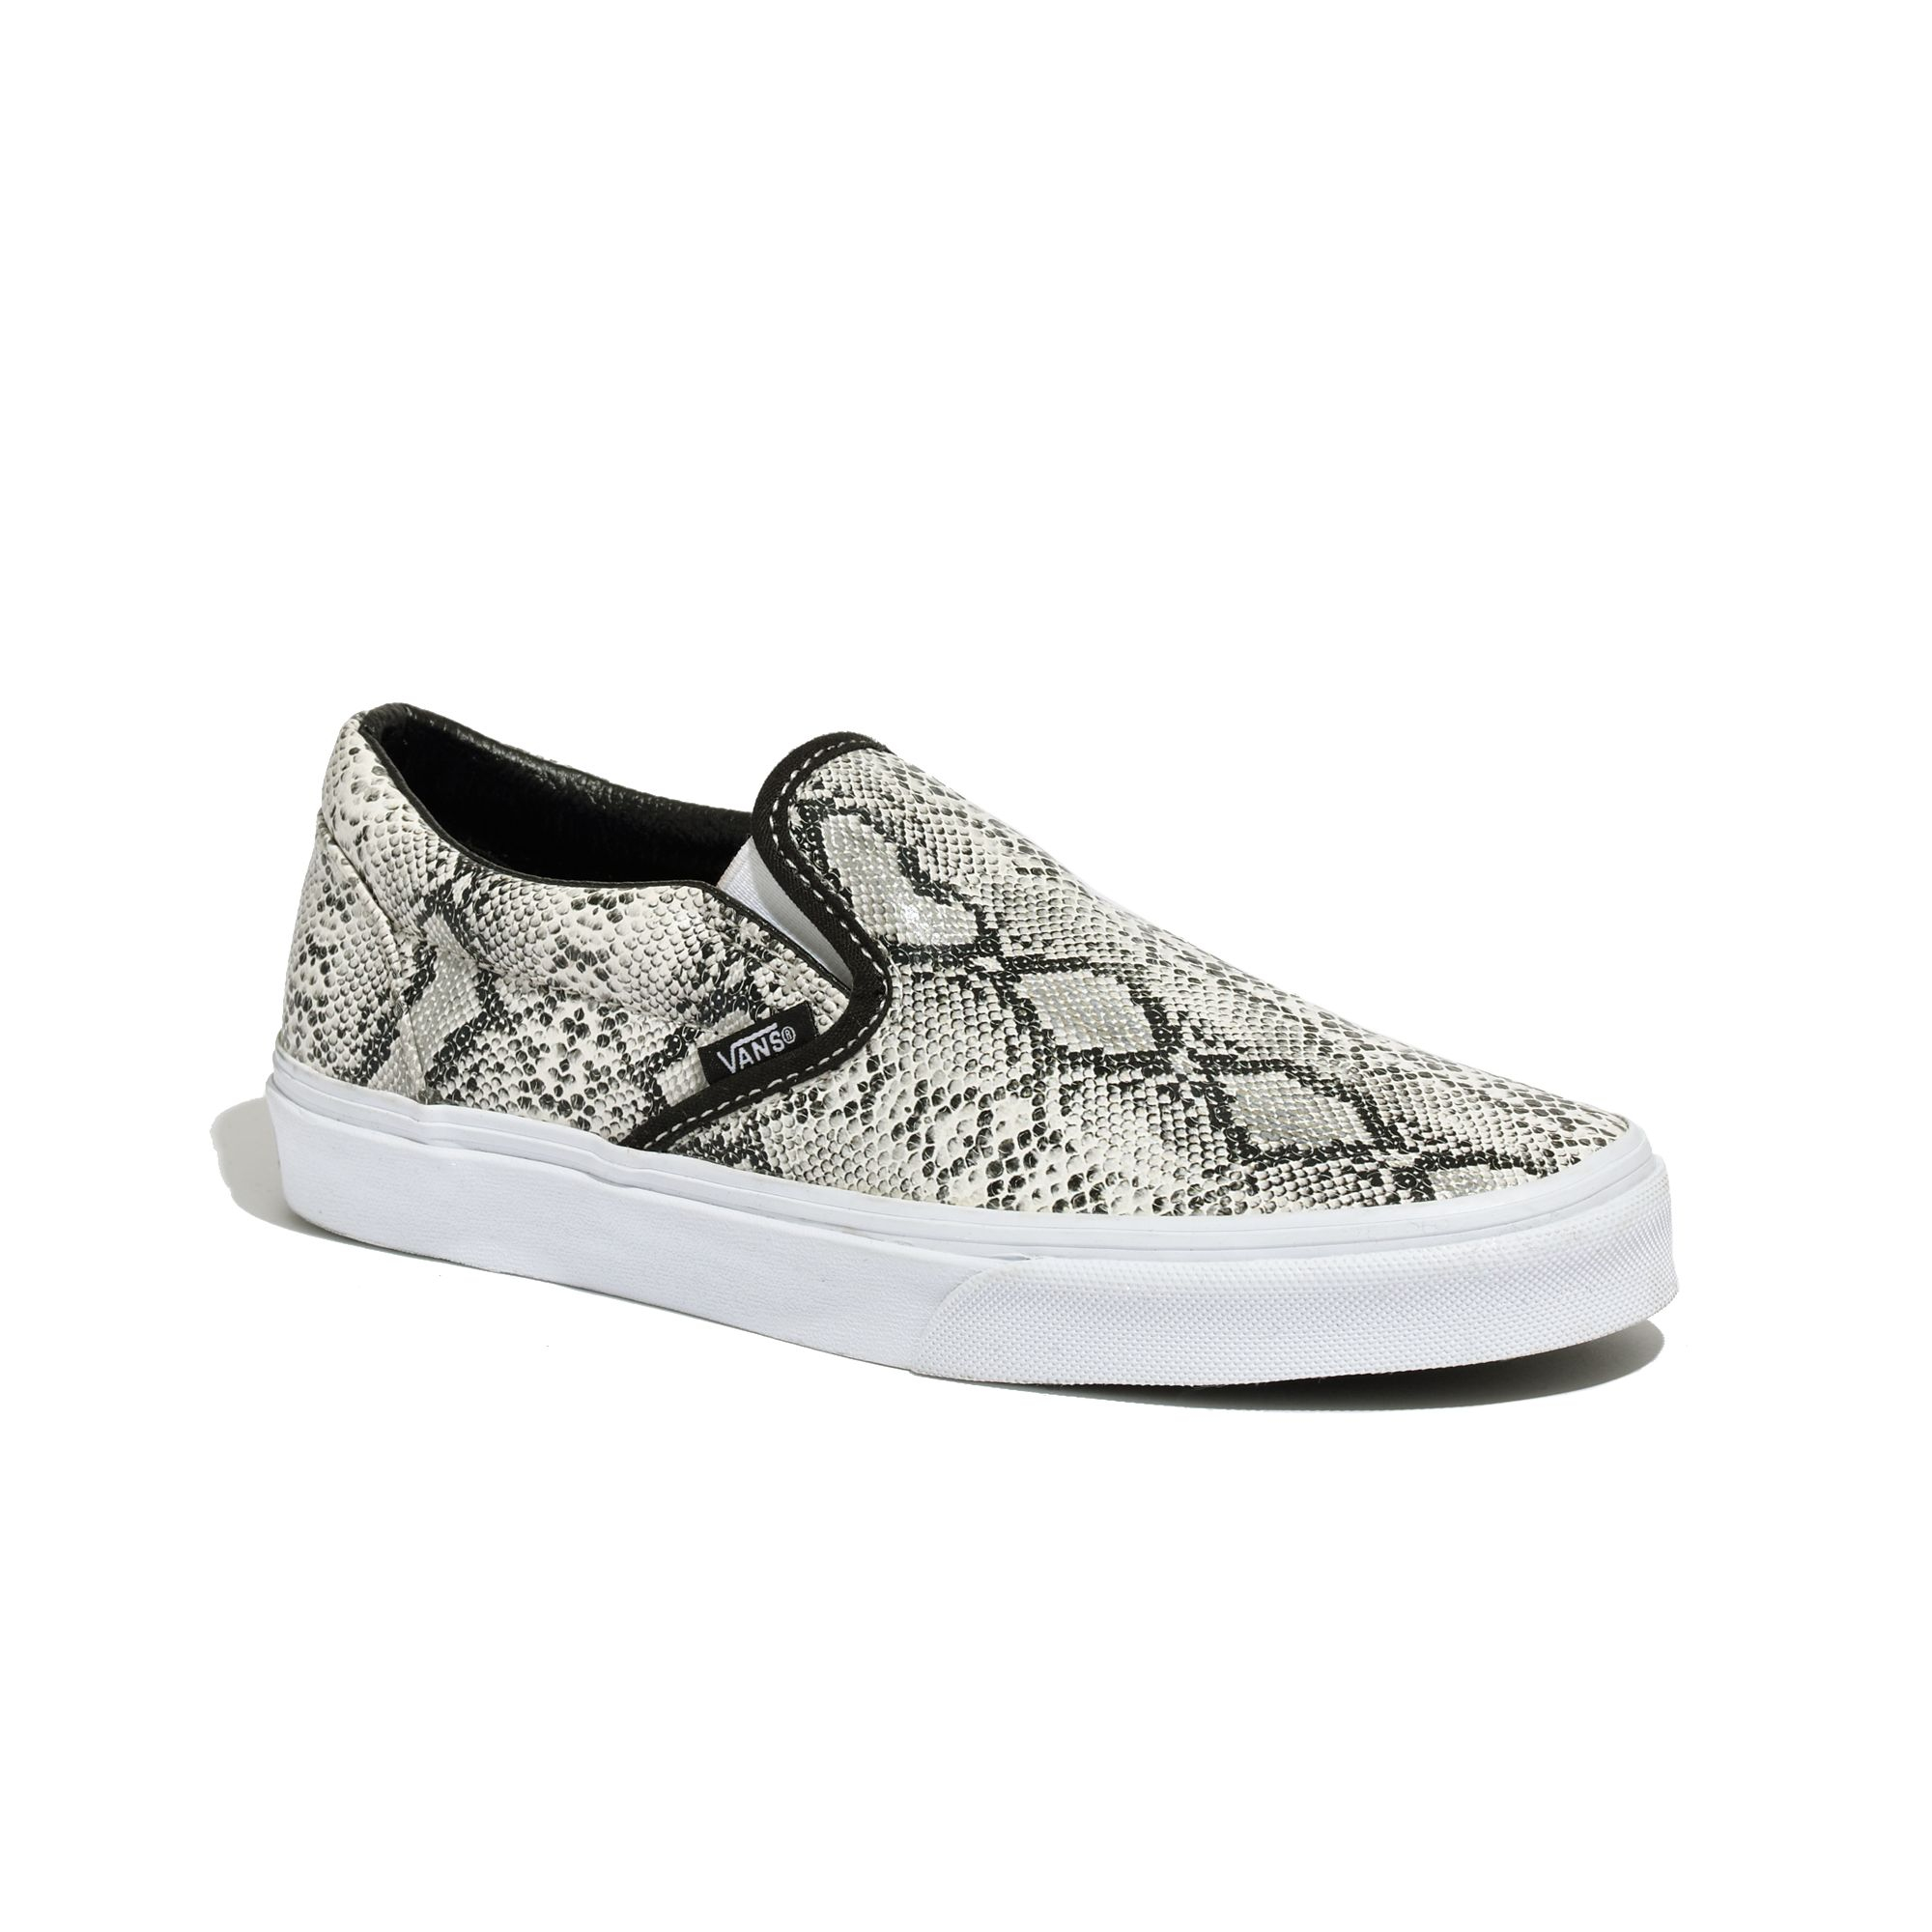 8745e94a55 Madewell Vans® Classic Slip-ons In Snake Print - Lyst